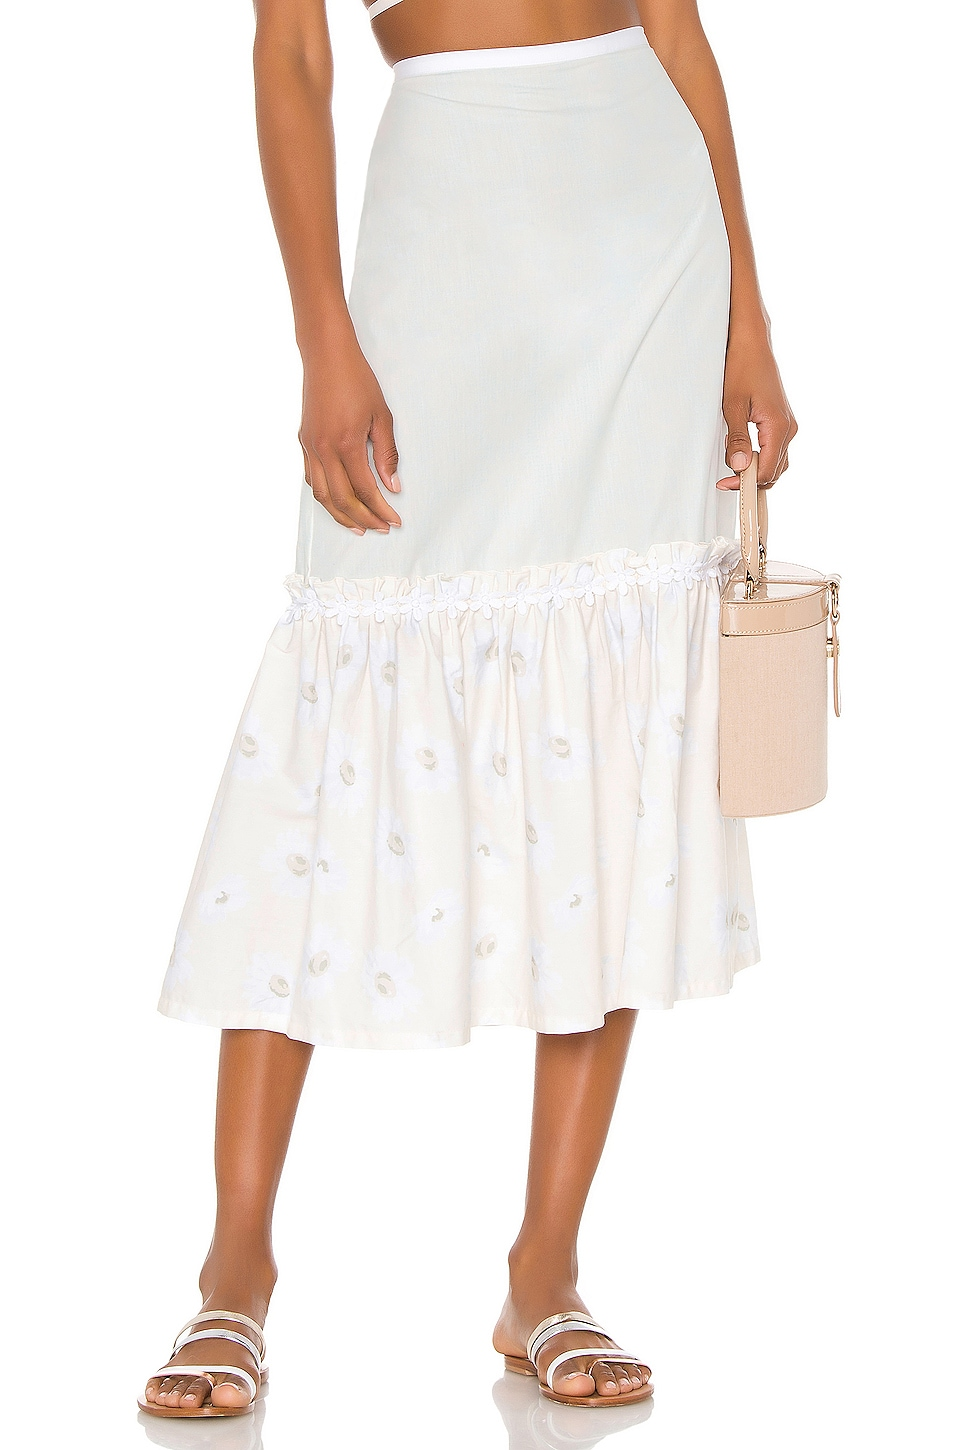 Solid & Striped Peasant Skirt in White Daisy Print Poplin Combo